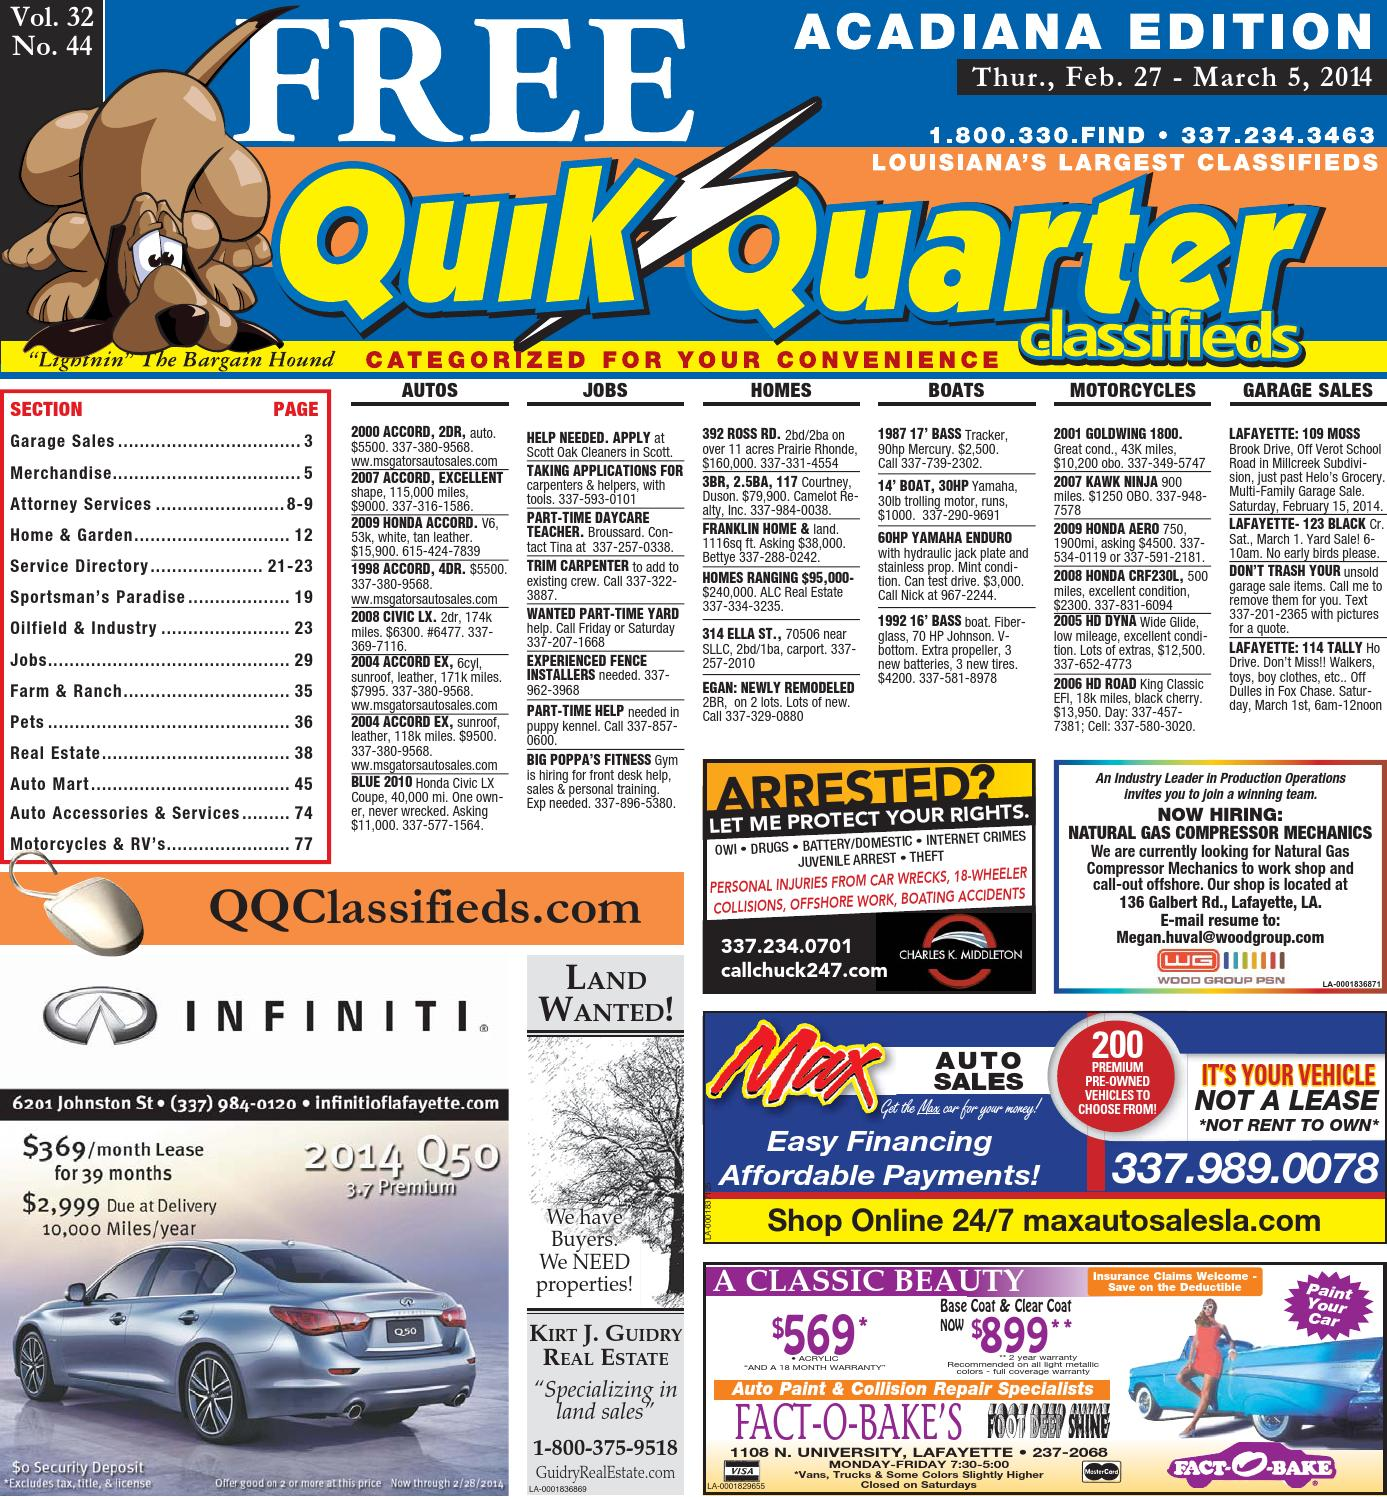 QQAcadiana 02 27 2014 by Part of the USA TODAY NETWORK issuu